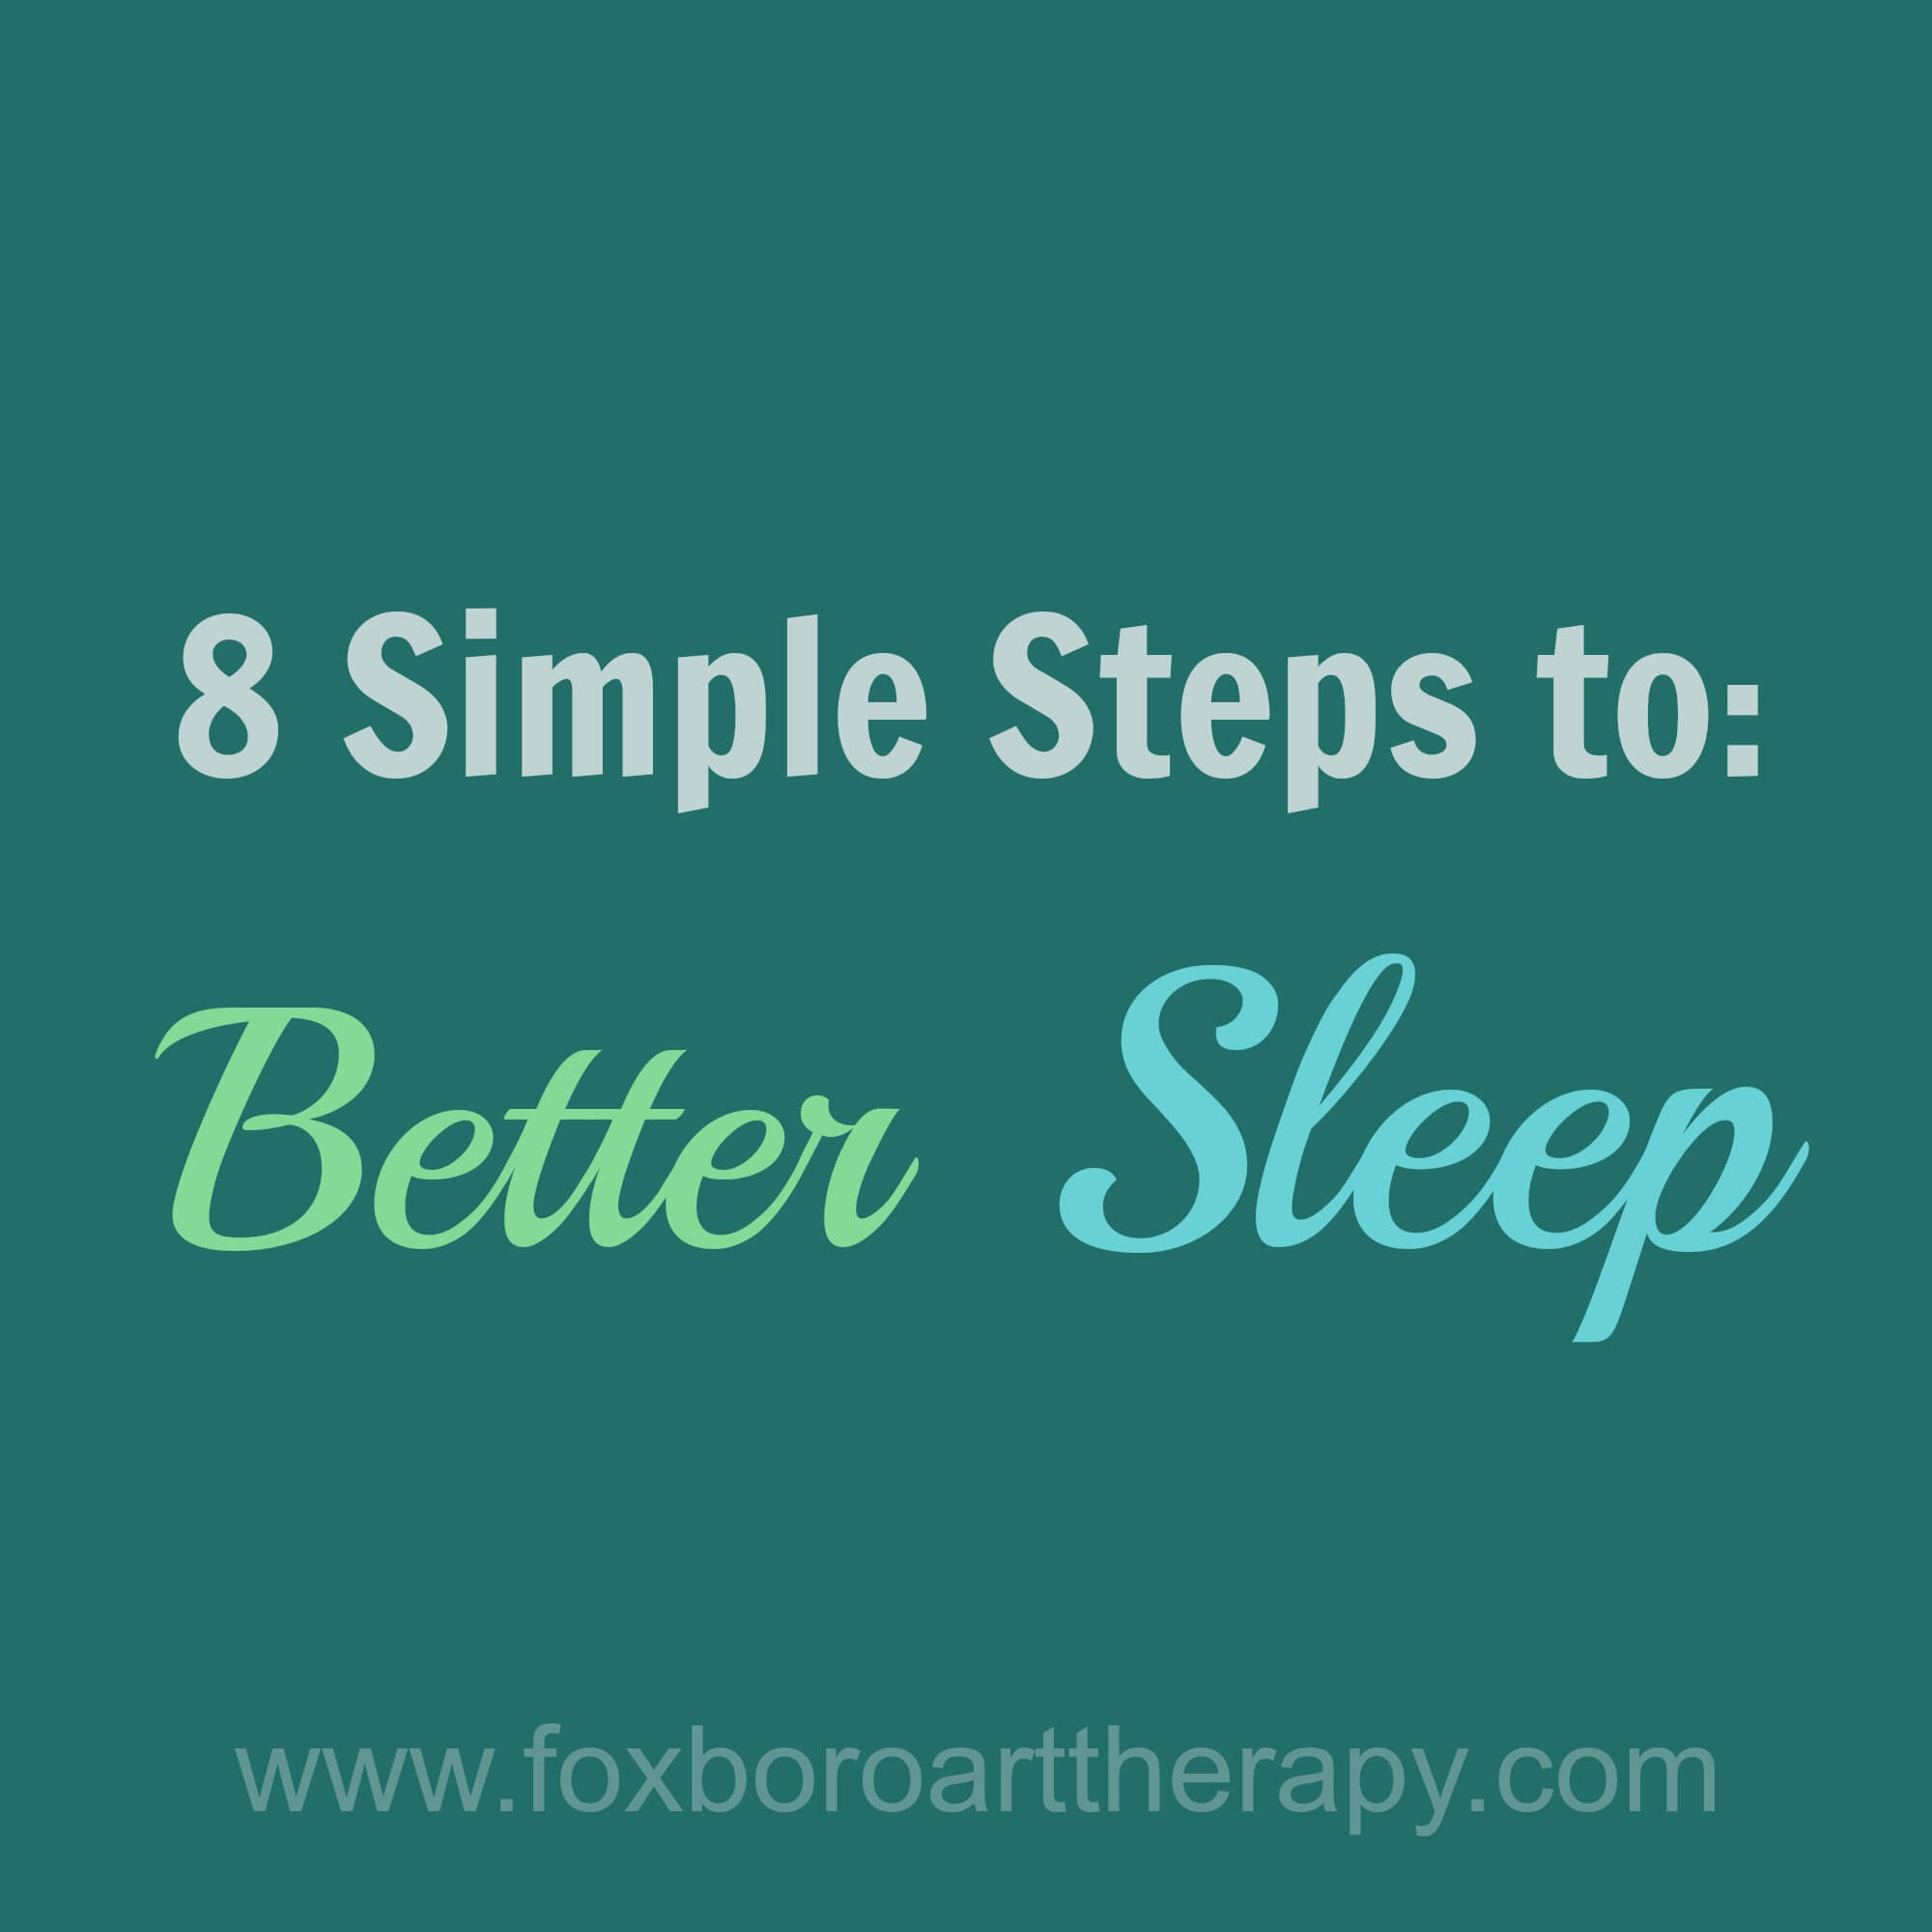 8 Simple Steps to Better Sleep